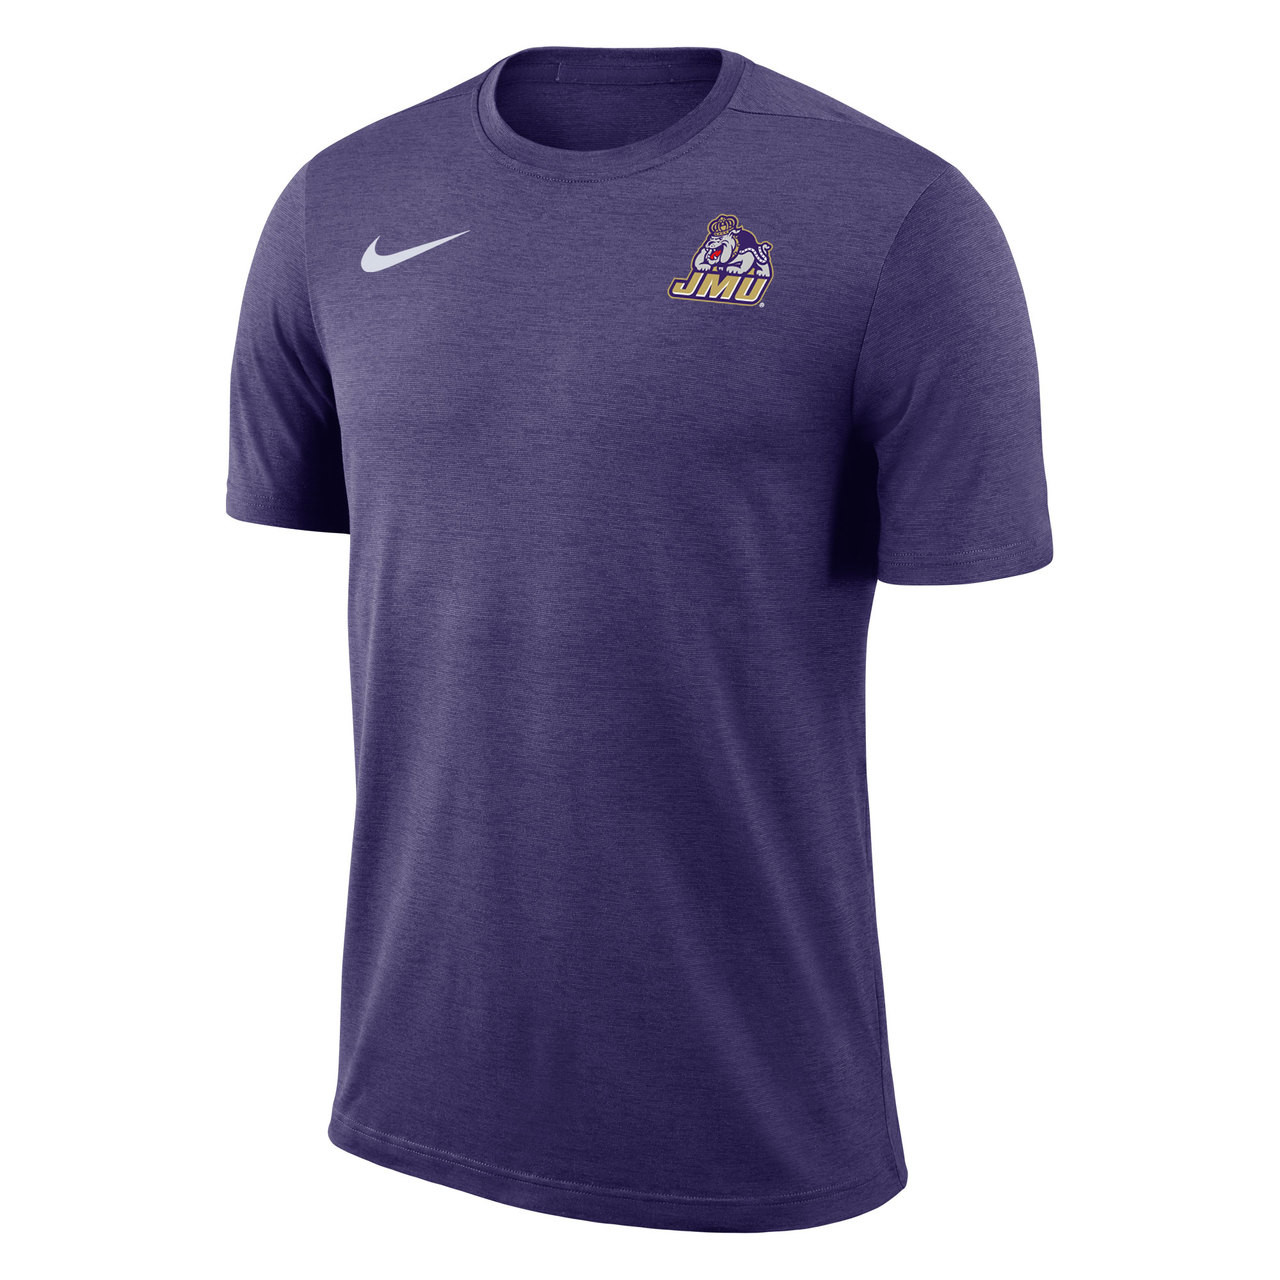 8aab5a446 Nike Coaches Short Sleeve Tee - University Outpost